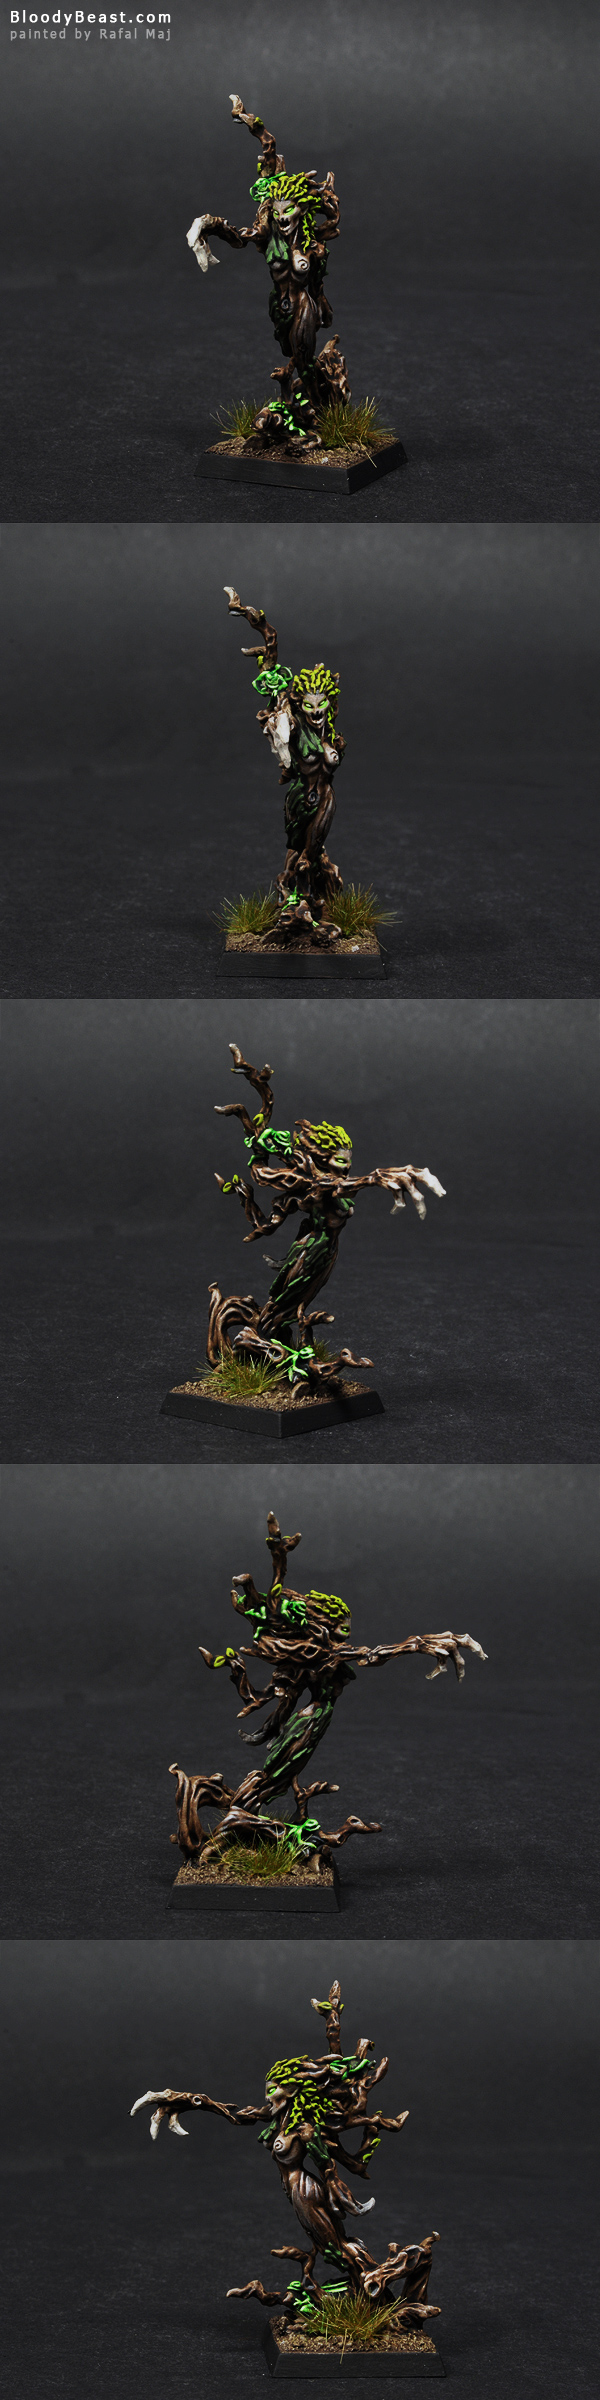 Wood Elf Drycha, Branchwraith painted by Rafal Maj (BloodyBeast.com)